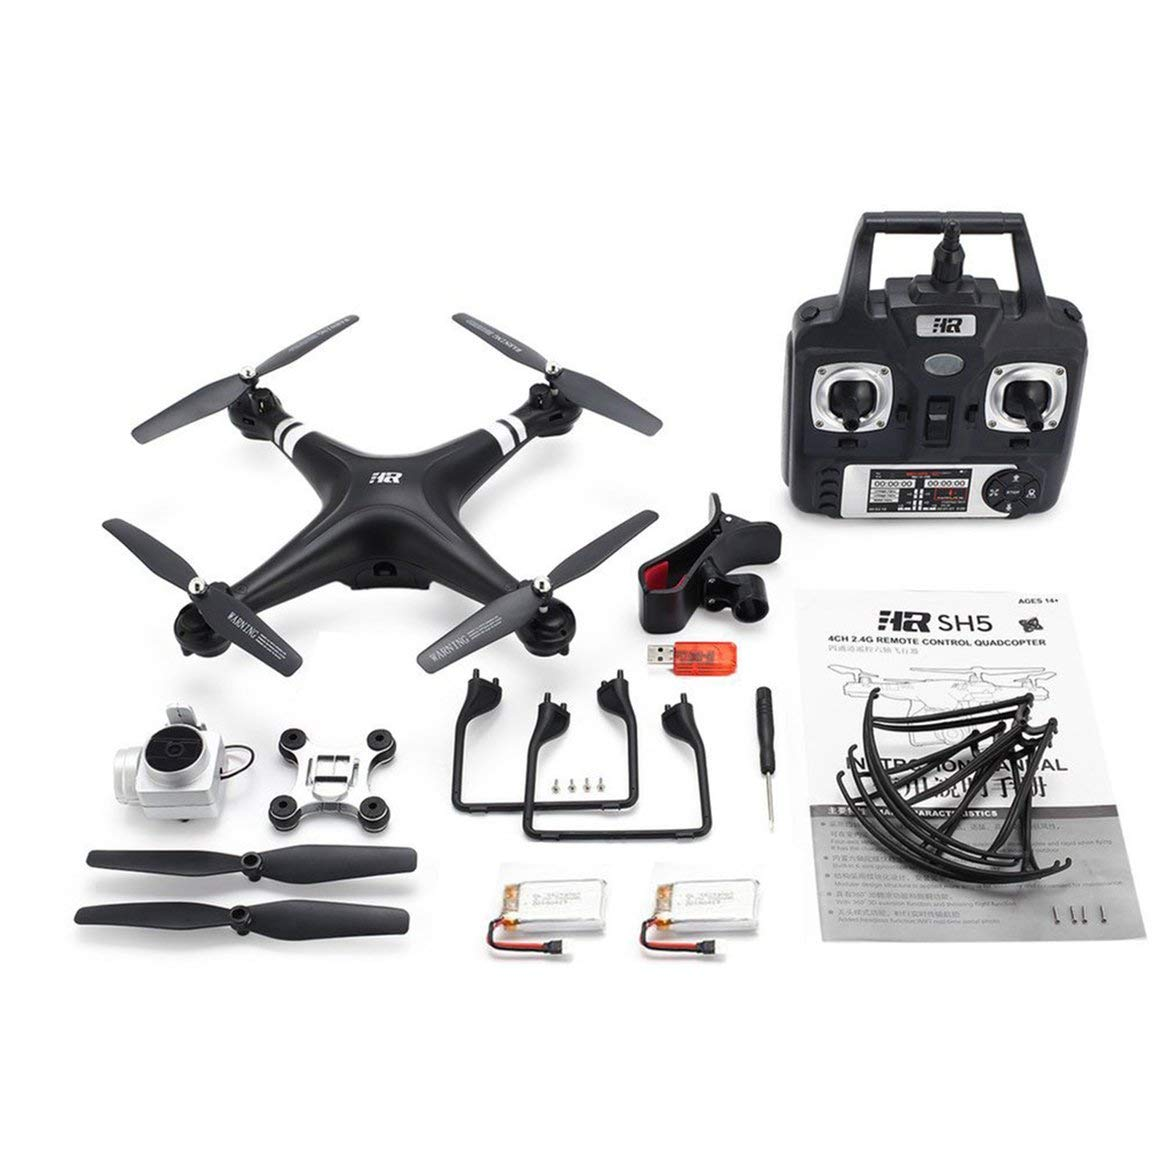 Harlls SH5H 2,4g FPV-Drohne mit 720p HD-WiFi-Kamera Live-Video-Headless-Modus-Schwerkraft-Sense-Return-Taste